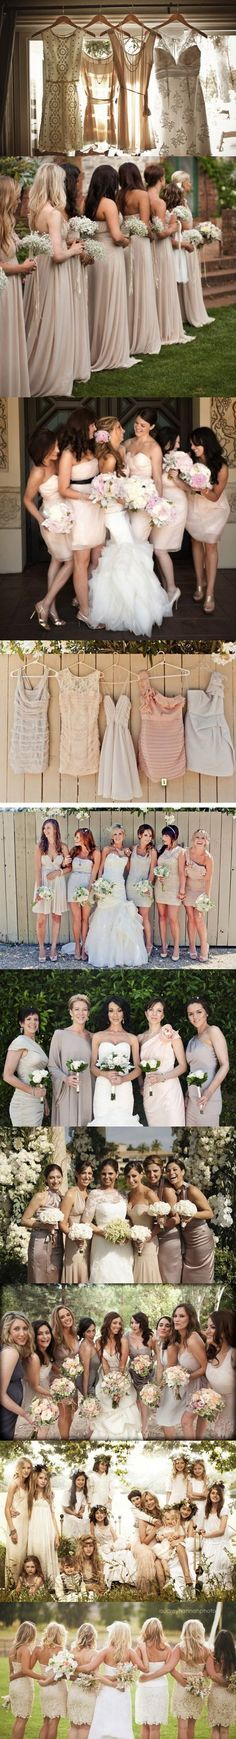 #bridesmaiddresses #beige #swansondiamondcenter pretty neutrals of every shade! beige, blush, champagne, ivory, cream, tan, khaki, bridesmaids dresses. YES YES YES YES YES YES YES YES YES.